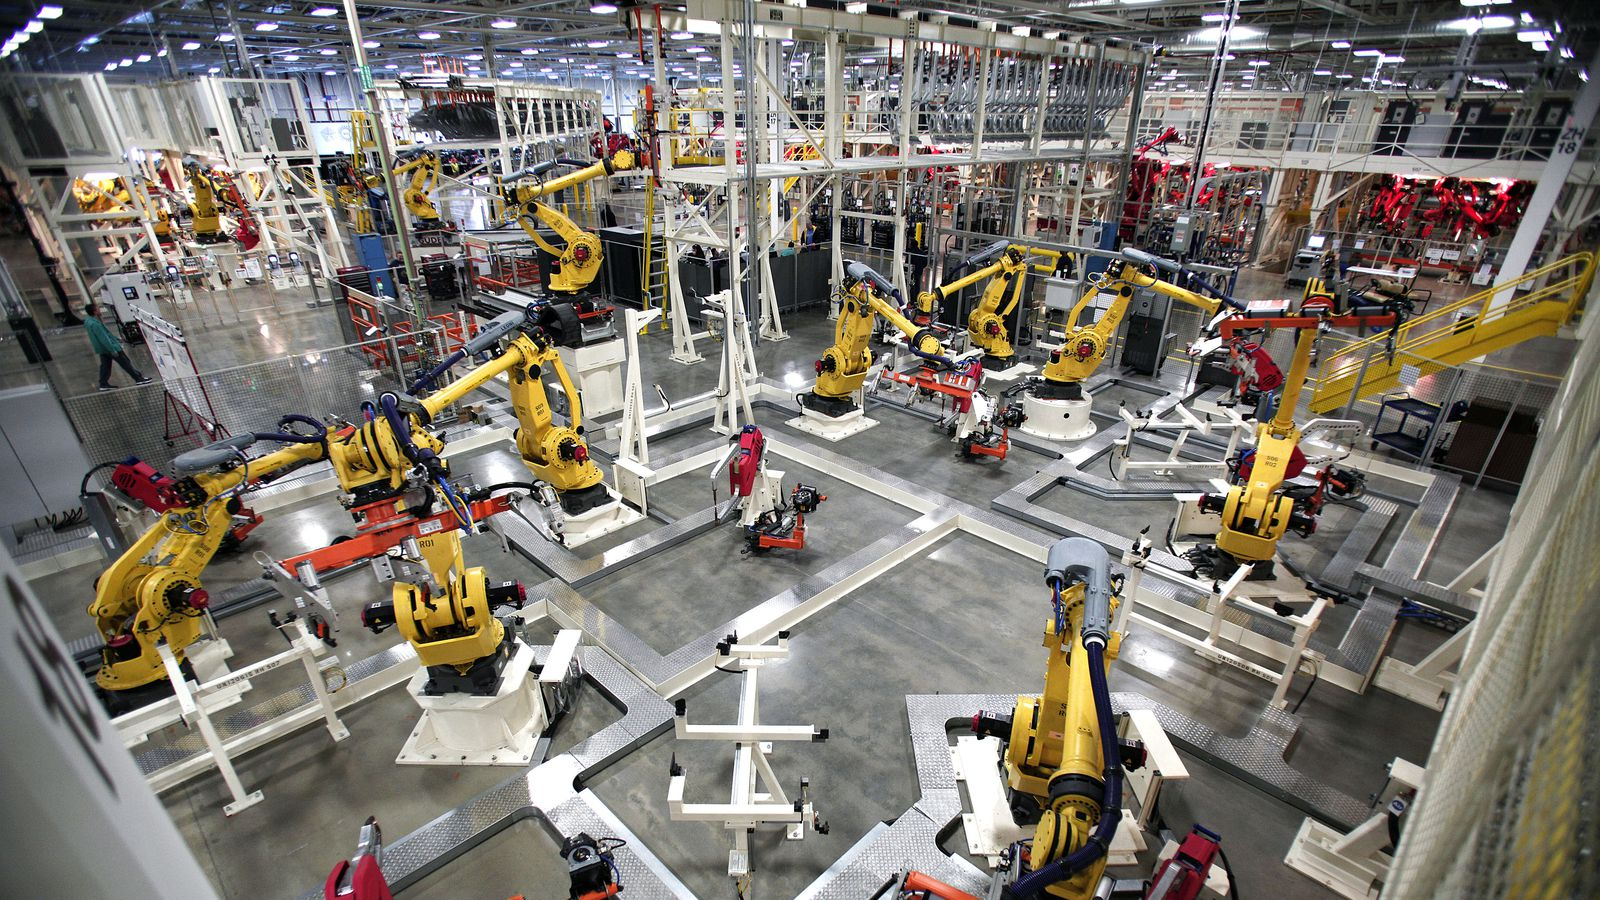 Six Jobs are Eliminated for Every Robot Introduced into the Workforce, a New Study Says